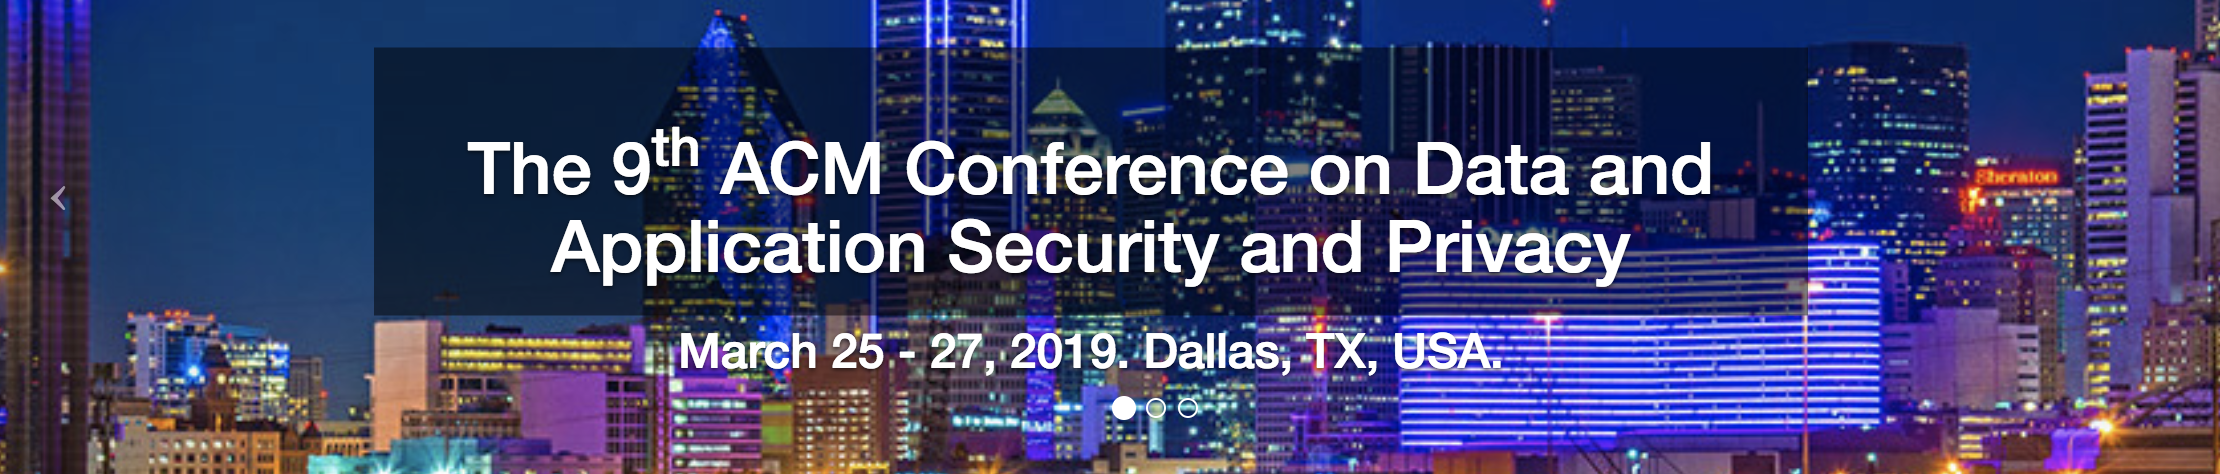 The 9th ACM Conference on Data and Application Security and Privacy (CODASPY 2019)